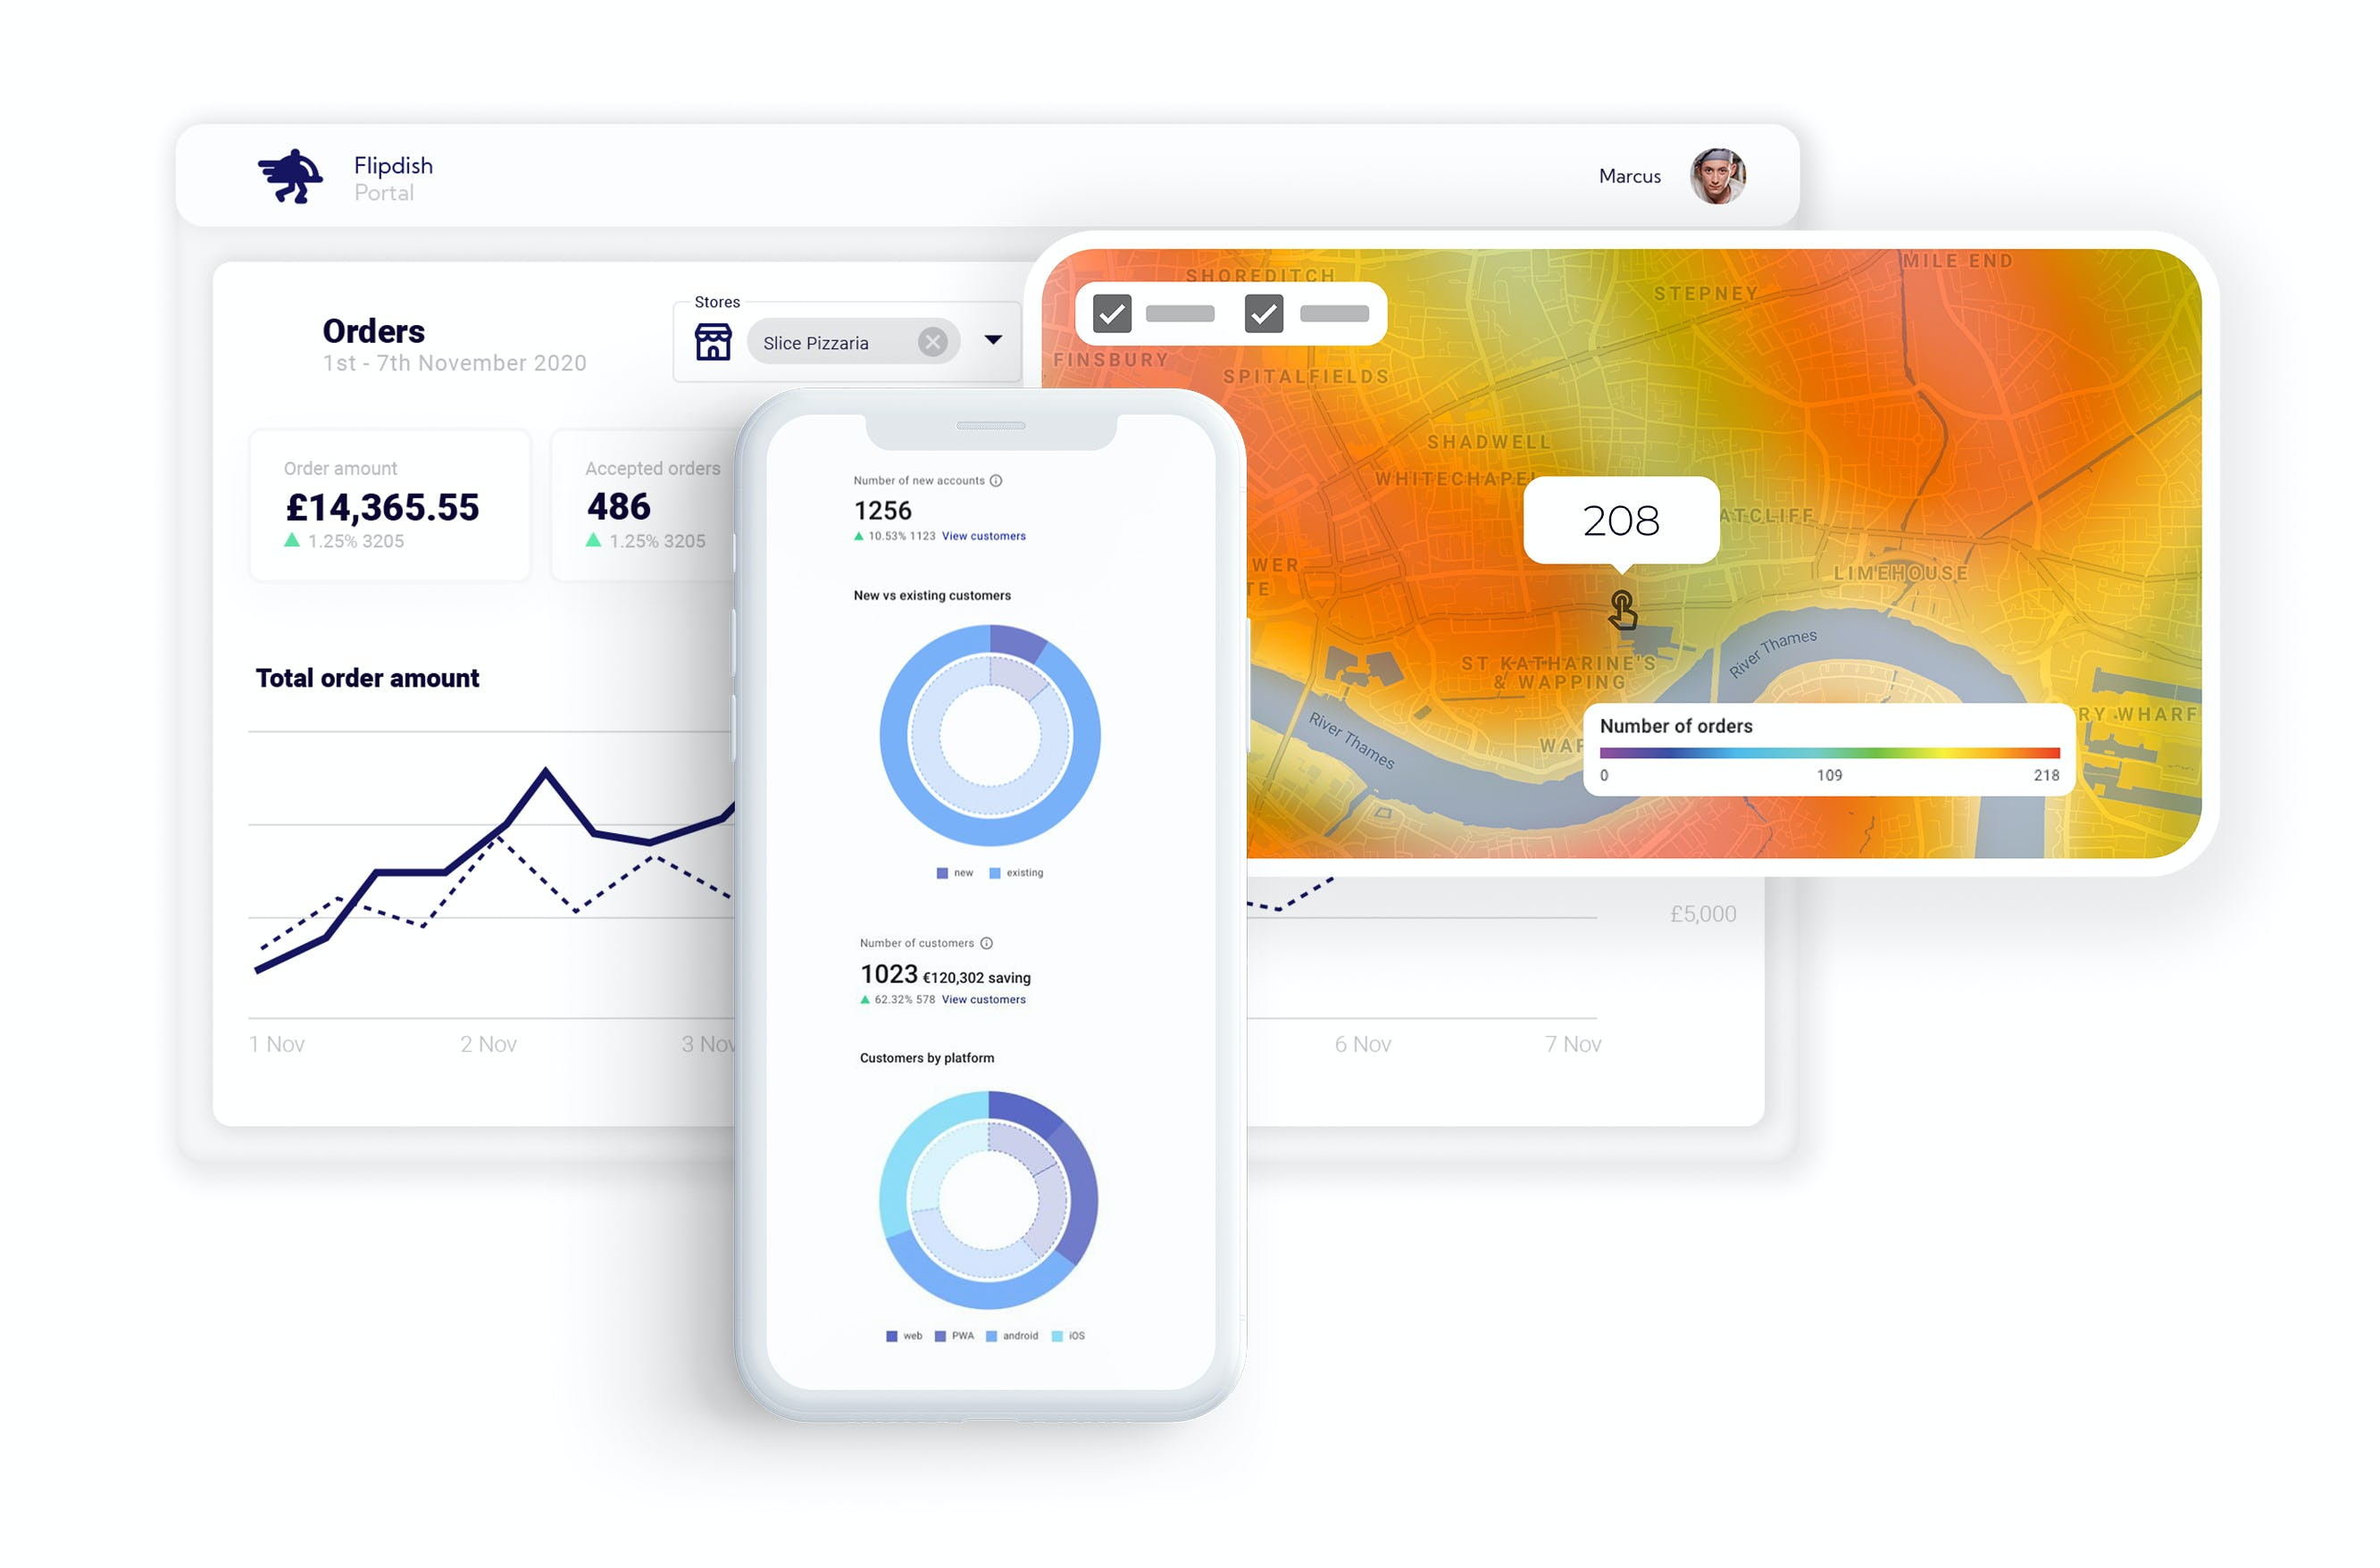 Flipdish Software - The Flipdish portal offers detailed analytics relating to your growth,  both across the whole business and at the individual store level.